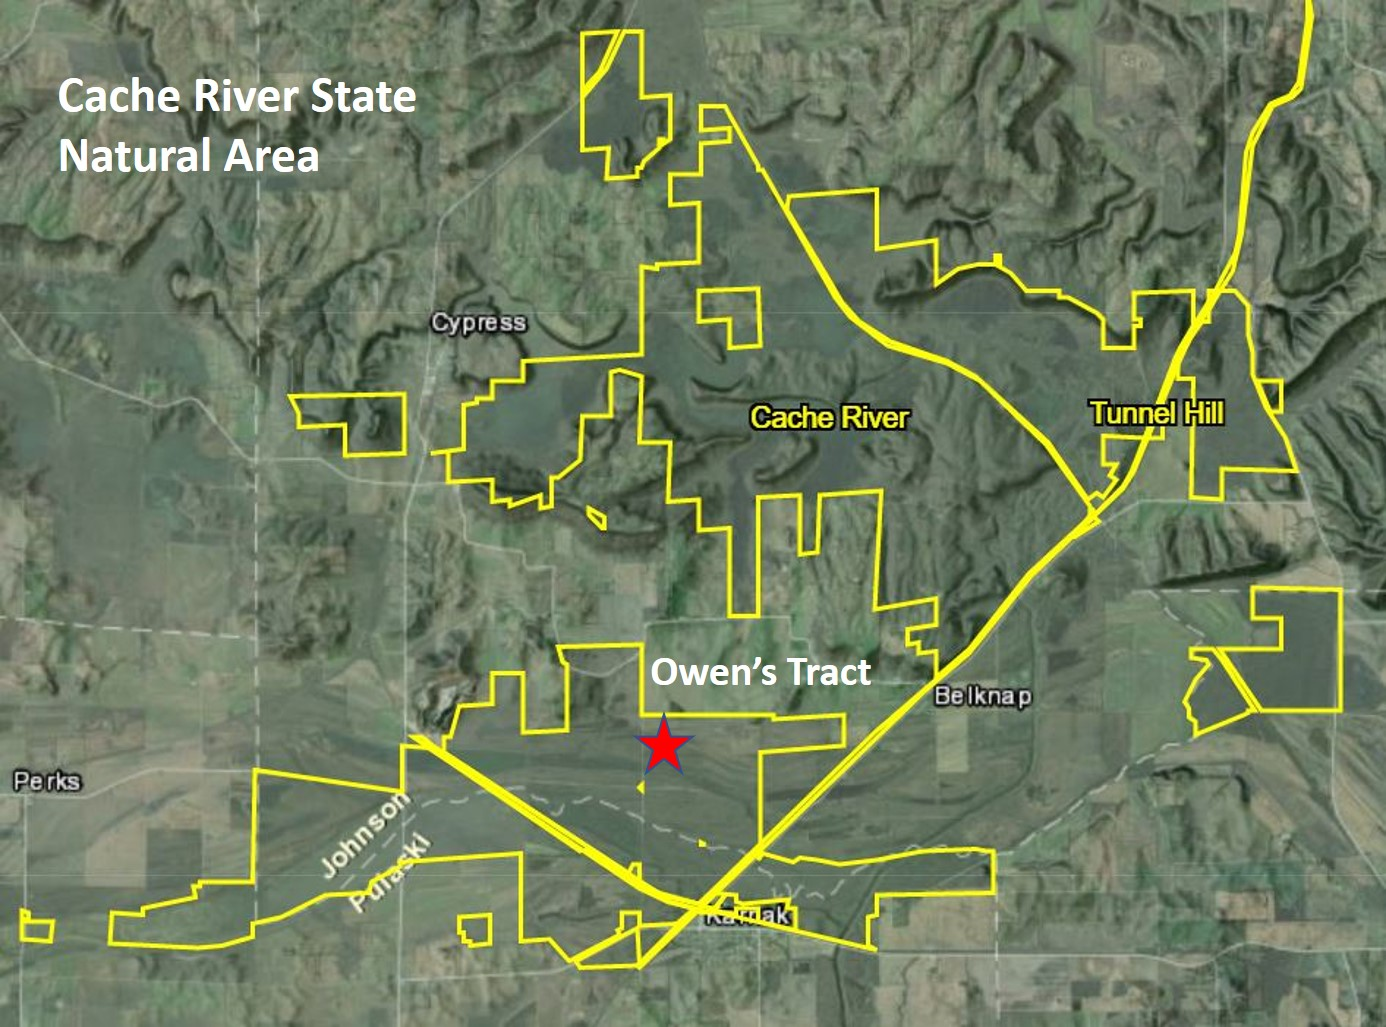 A map of the Cache River State Natural area with topography and a star indicating the Owen's Tract.